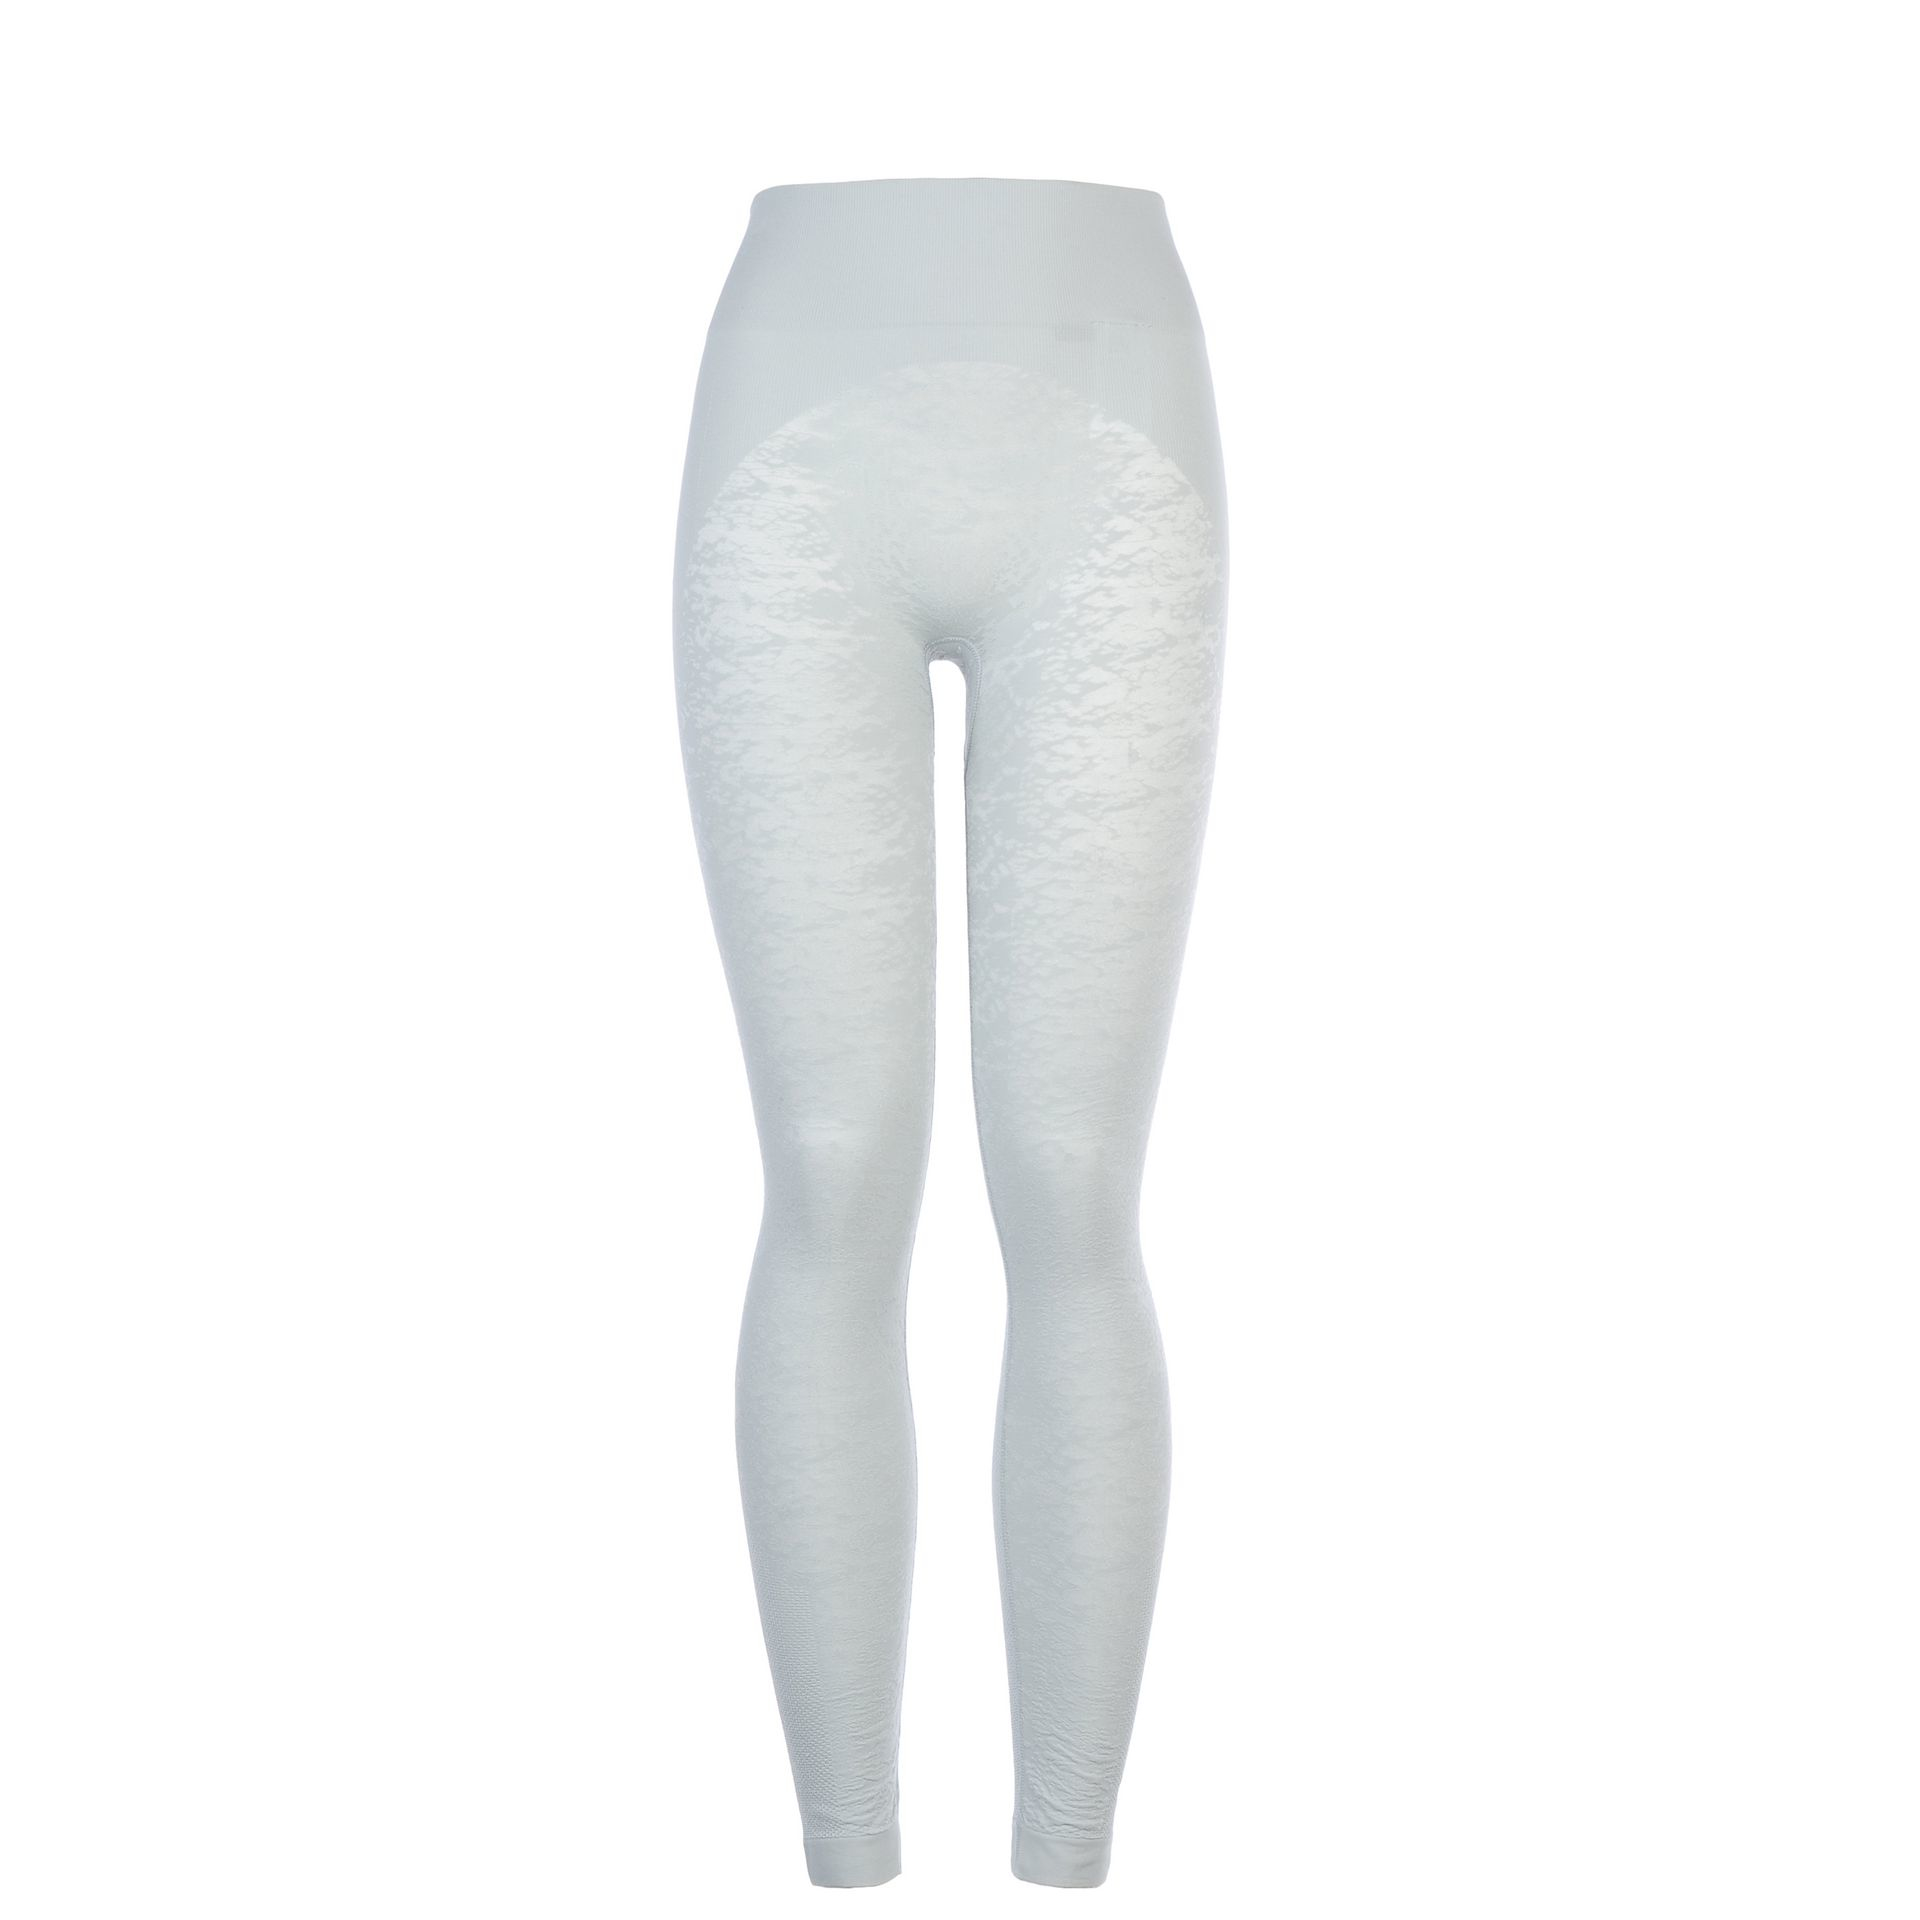 128e627eda4 adidas By Stella McCartney Snake Seamless Essentials Leggings in ...